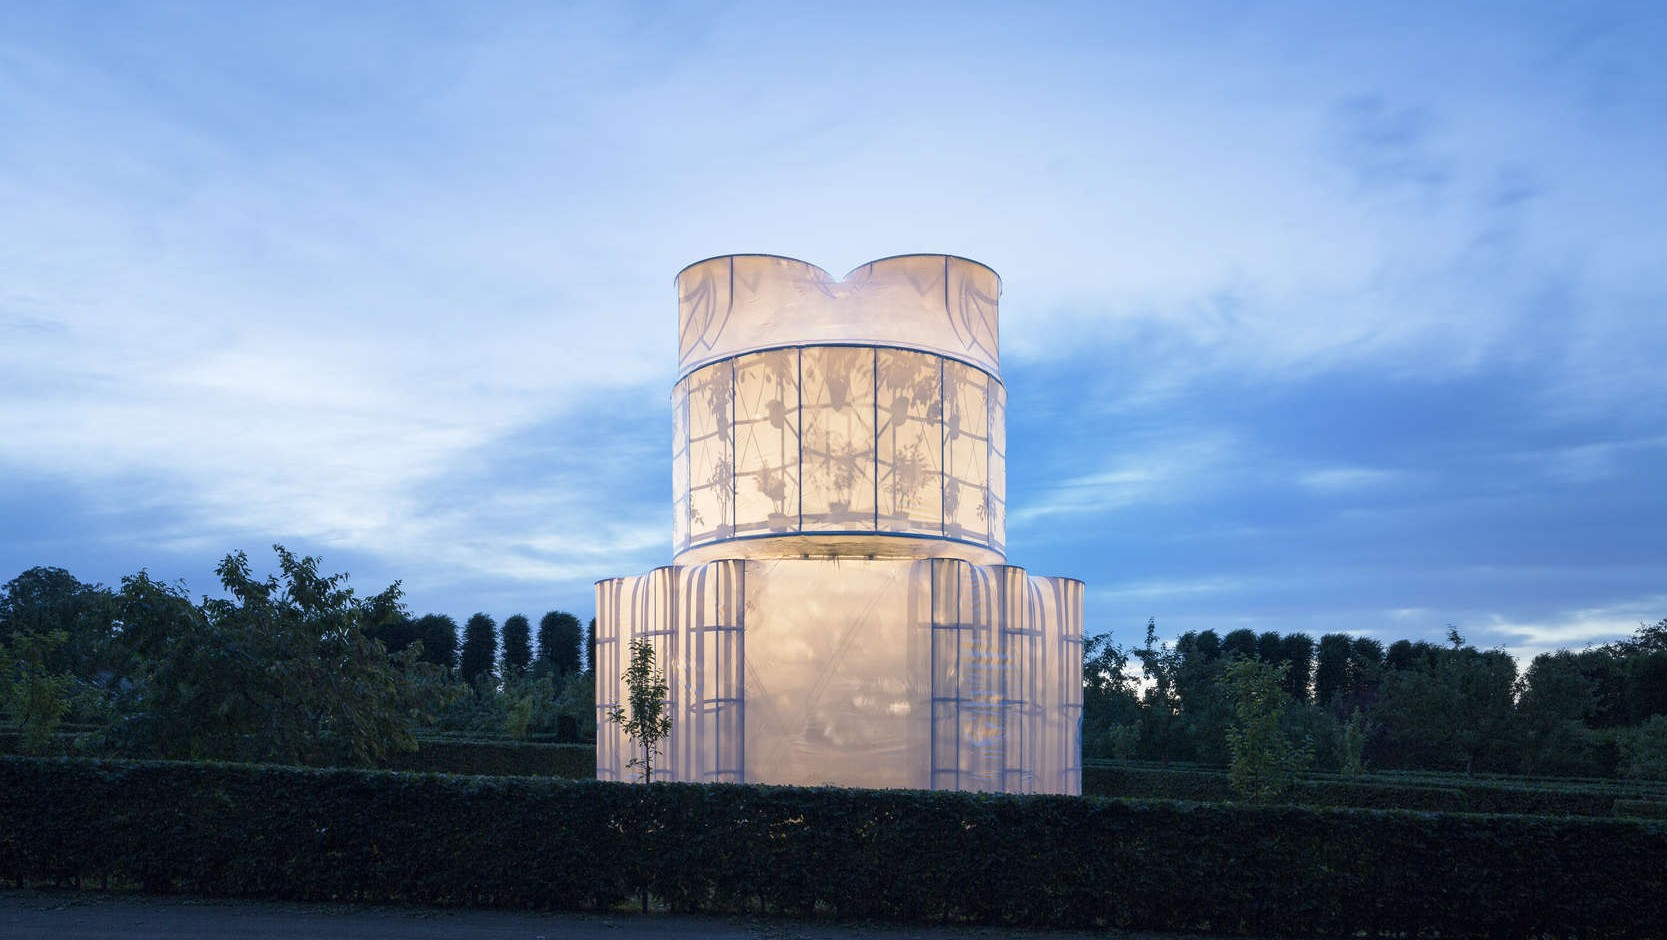 Pushing the Boundary: Translucent Fabric and Tensile Façades